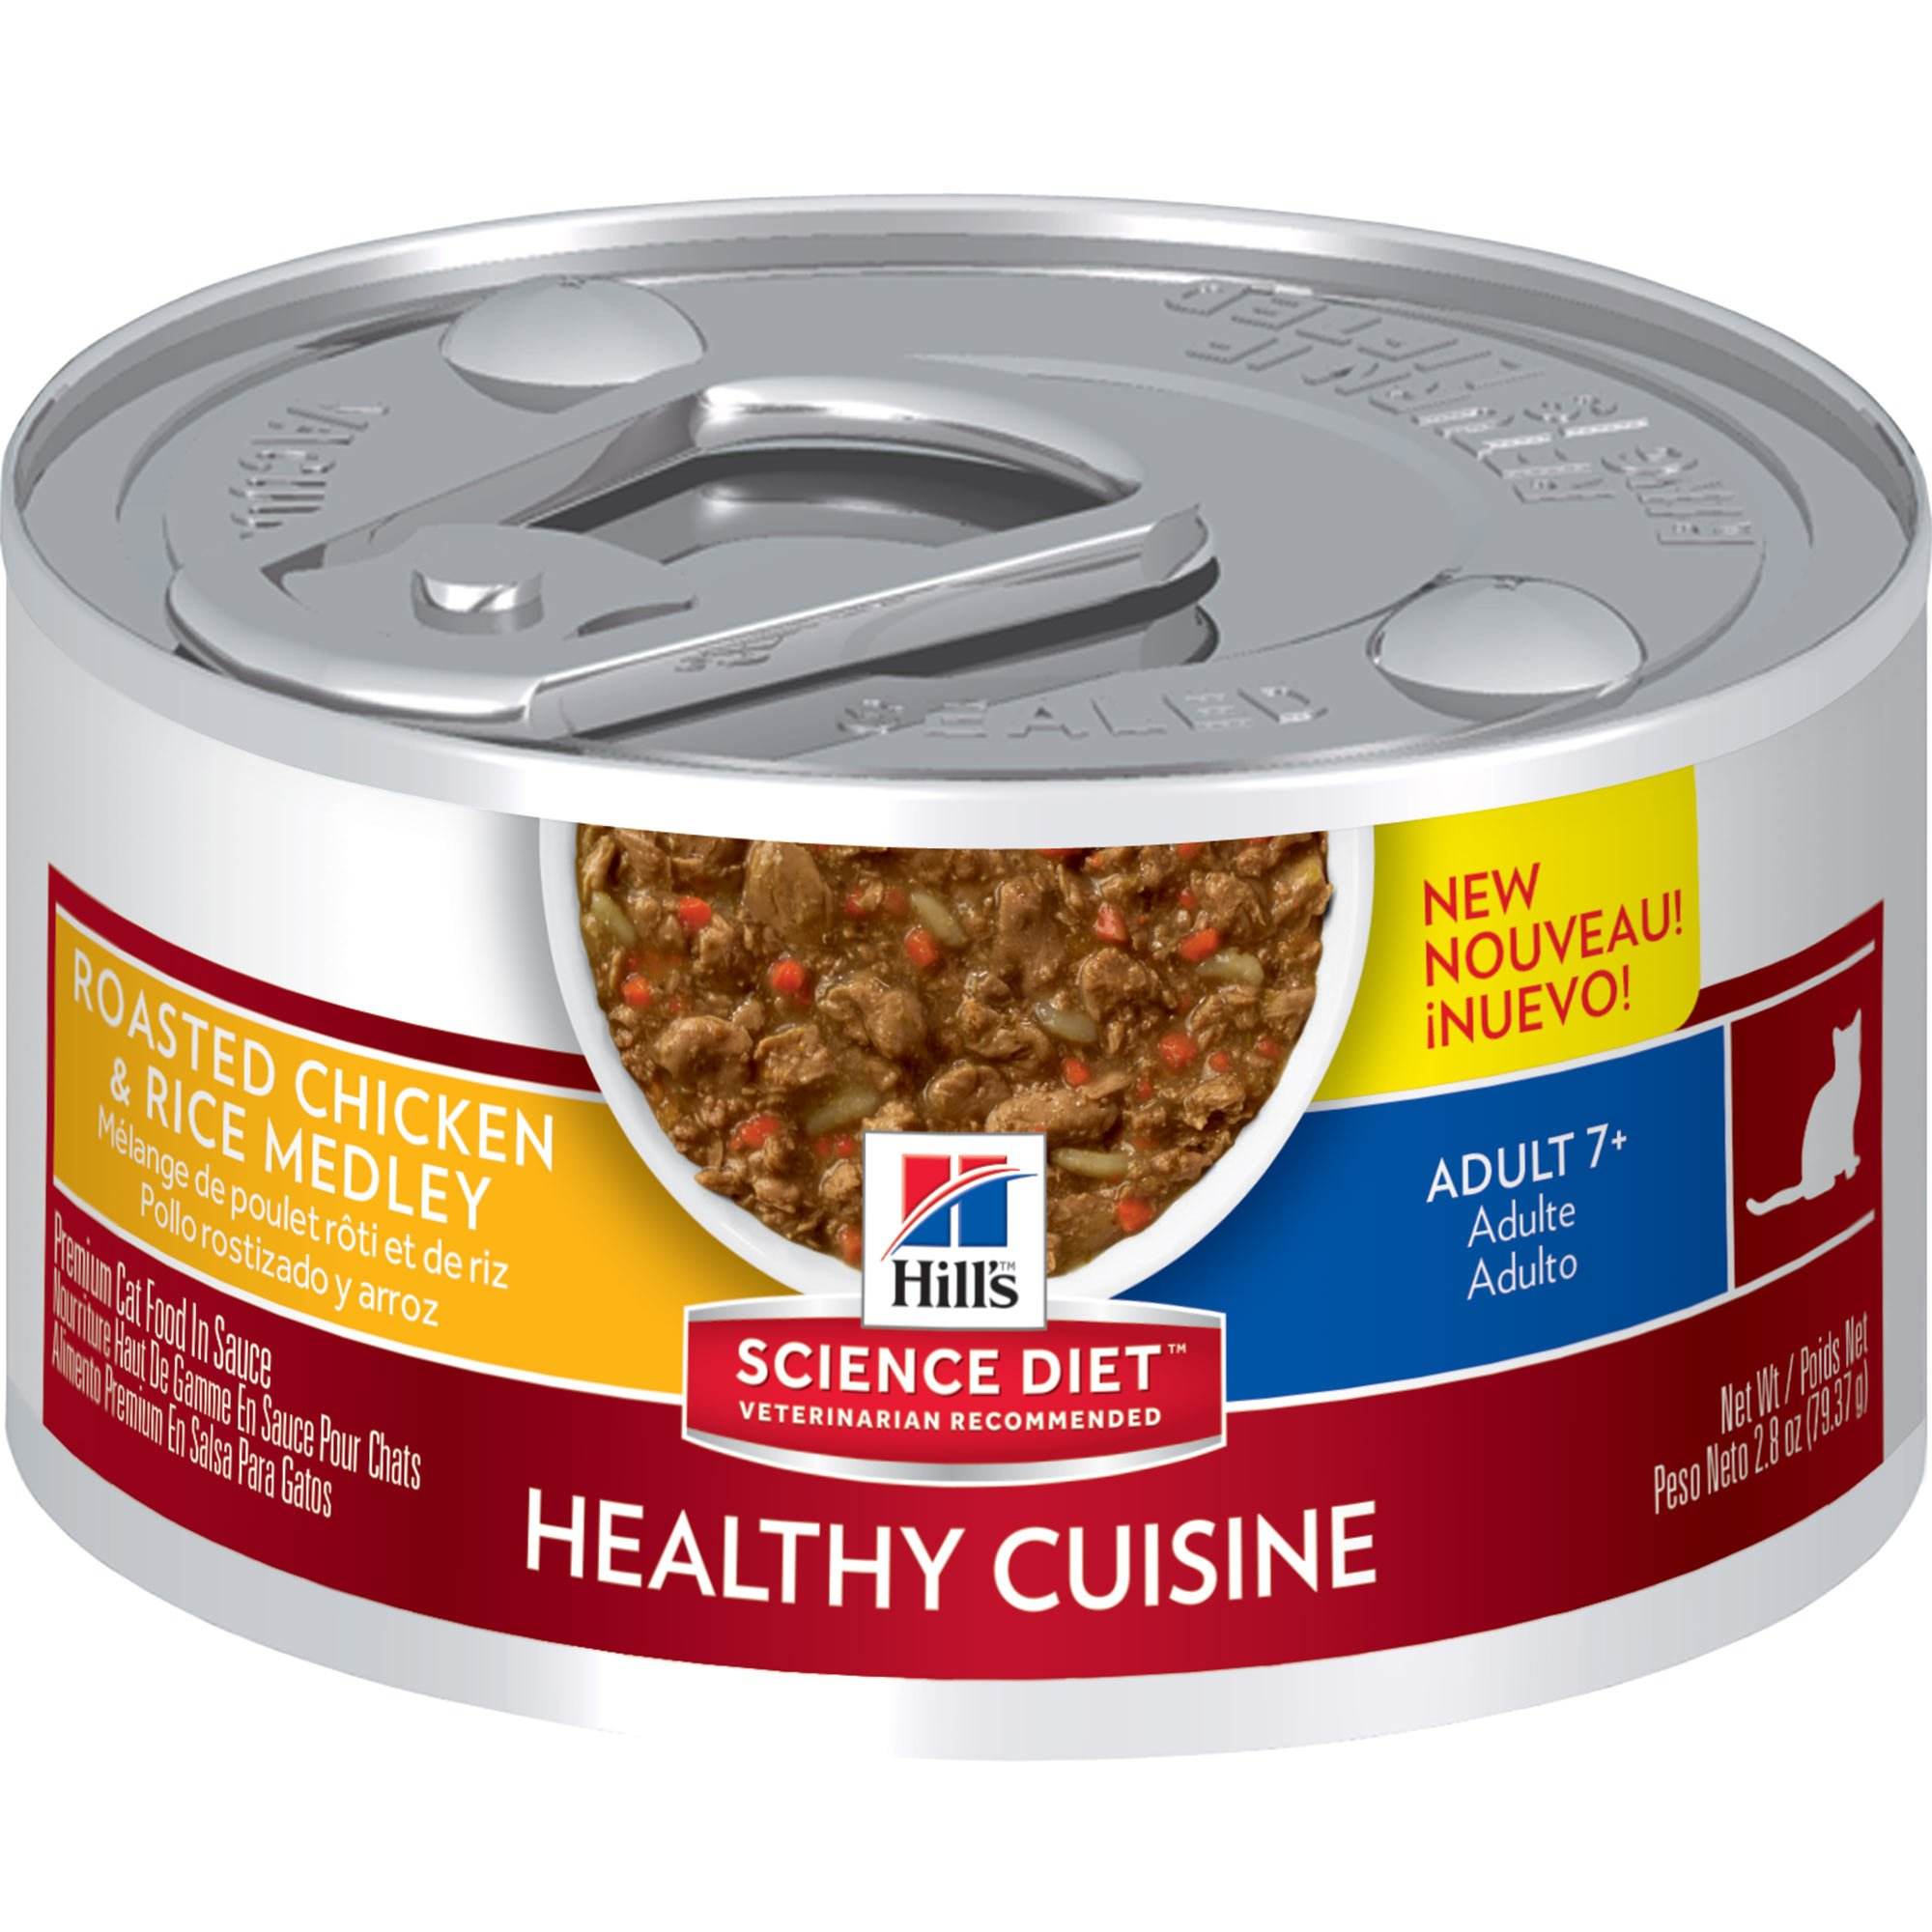 Hill S Science Diet Adult 7 Healthy Cuisine Roasted Chicken Rice Medley Cat Food 2 8 Oz Case Of 24 In 2020 Canned Cat Food Hills Science Diet Science Diet